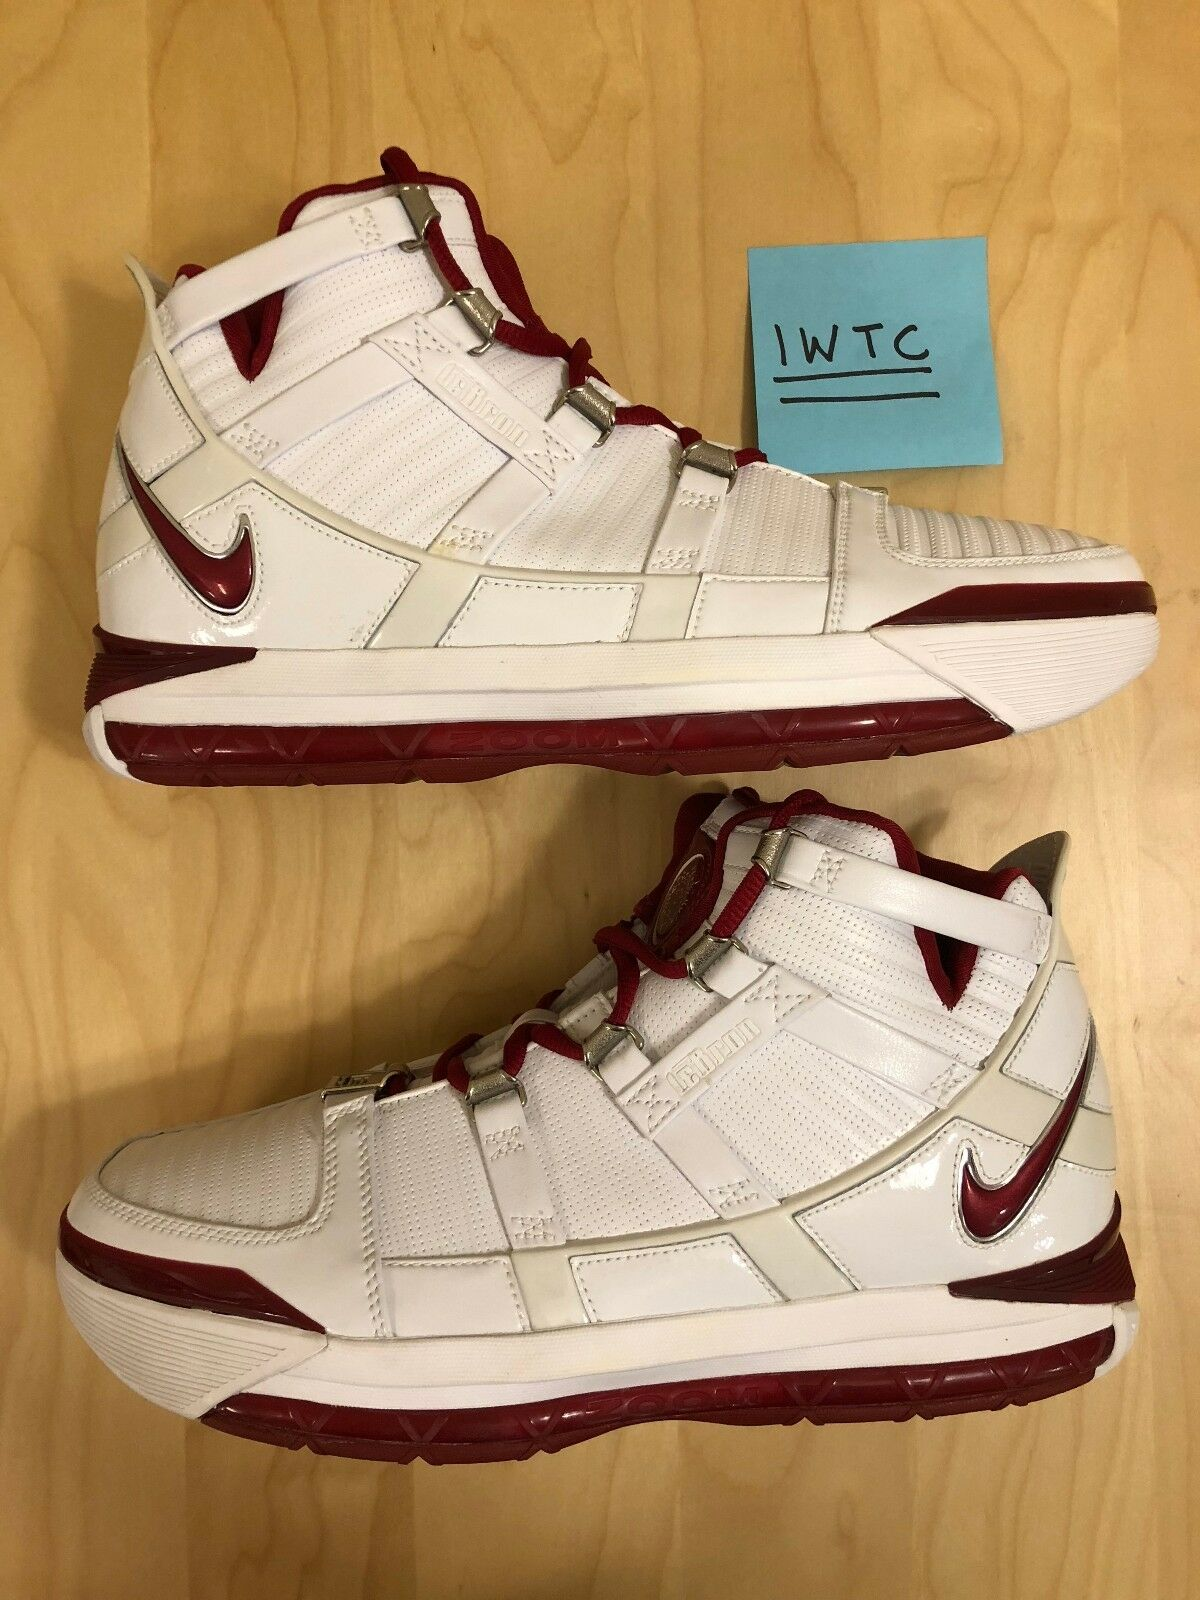 Nike Zoom Exclusive LeBron III 3 China Exclusive Zoom Red Champ Limited DS New SZ 10 0088/1000 da282d